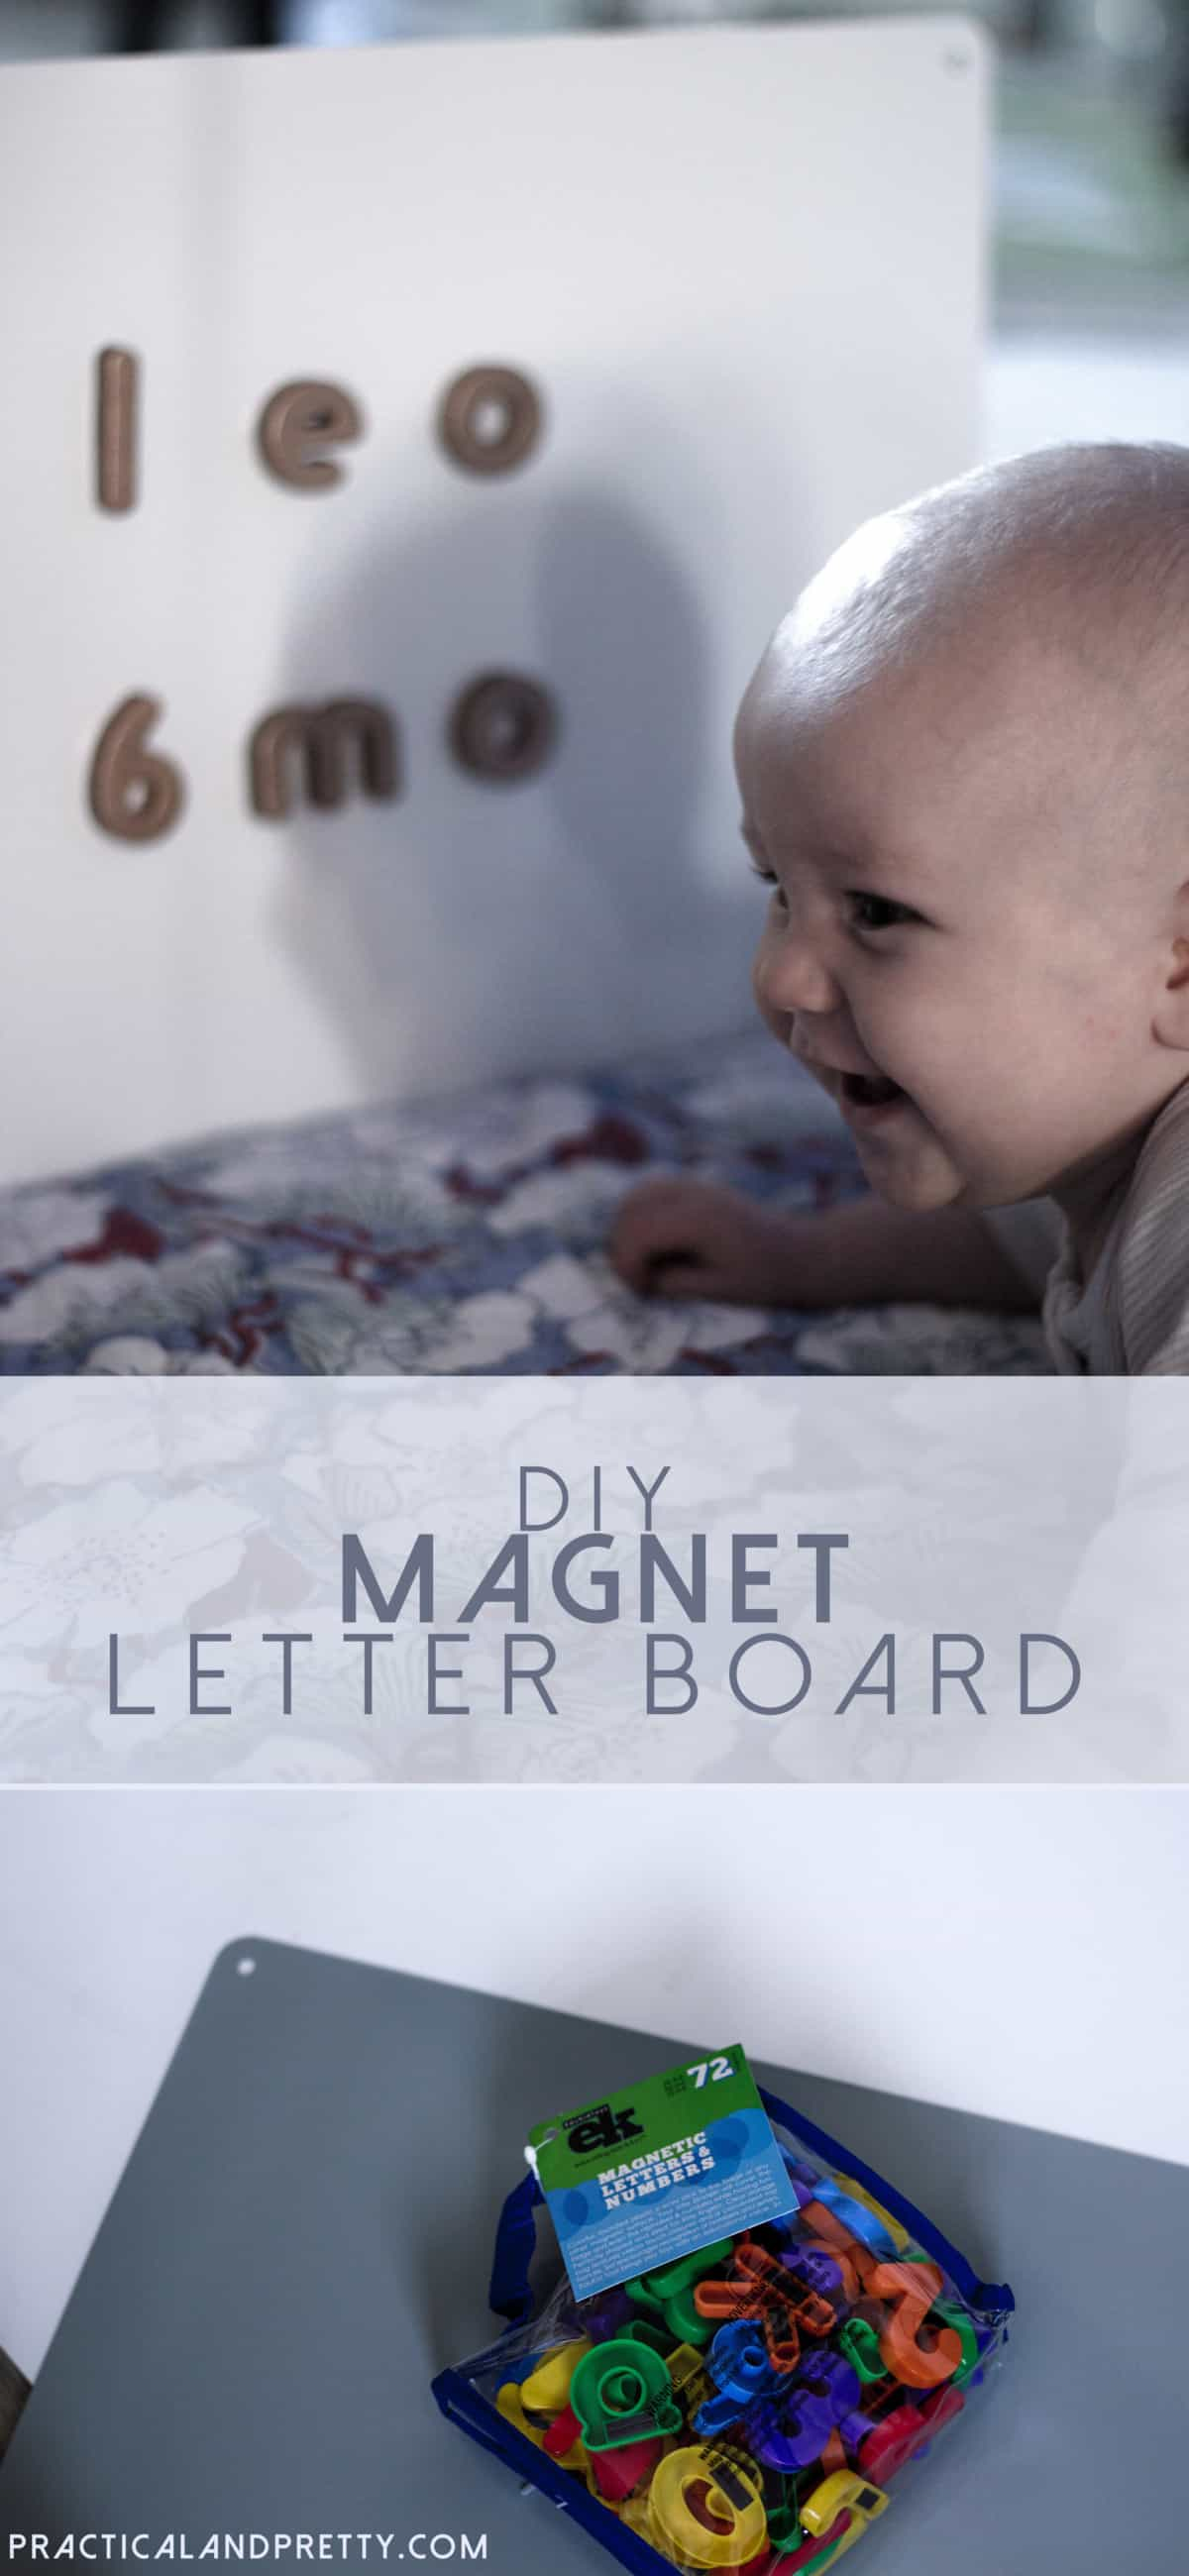 You don't have to spend a lot of money for a magnetic letter board! This DIY is so simple and you can use it for pretty much anything.